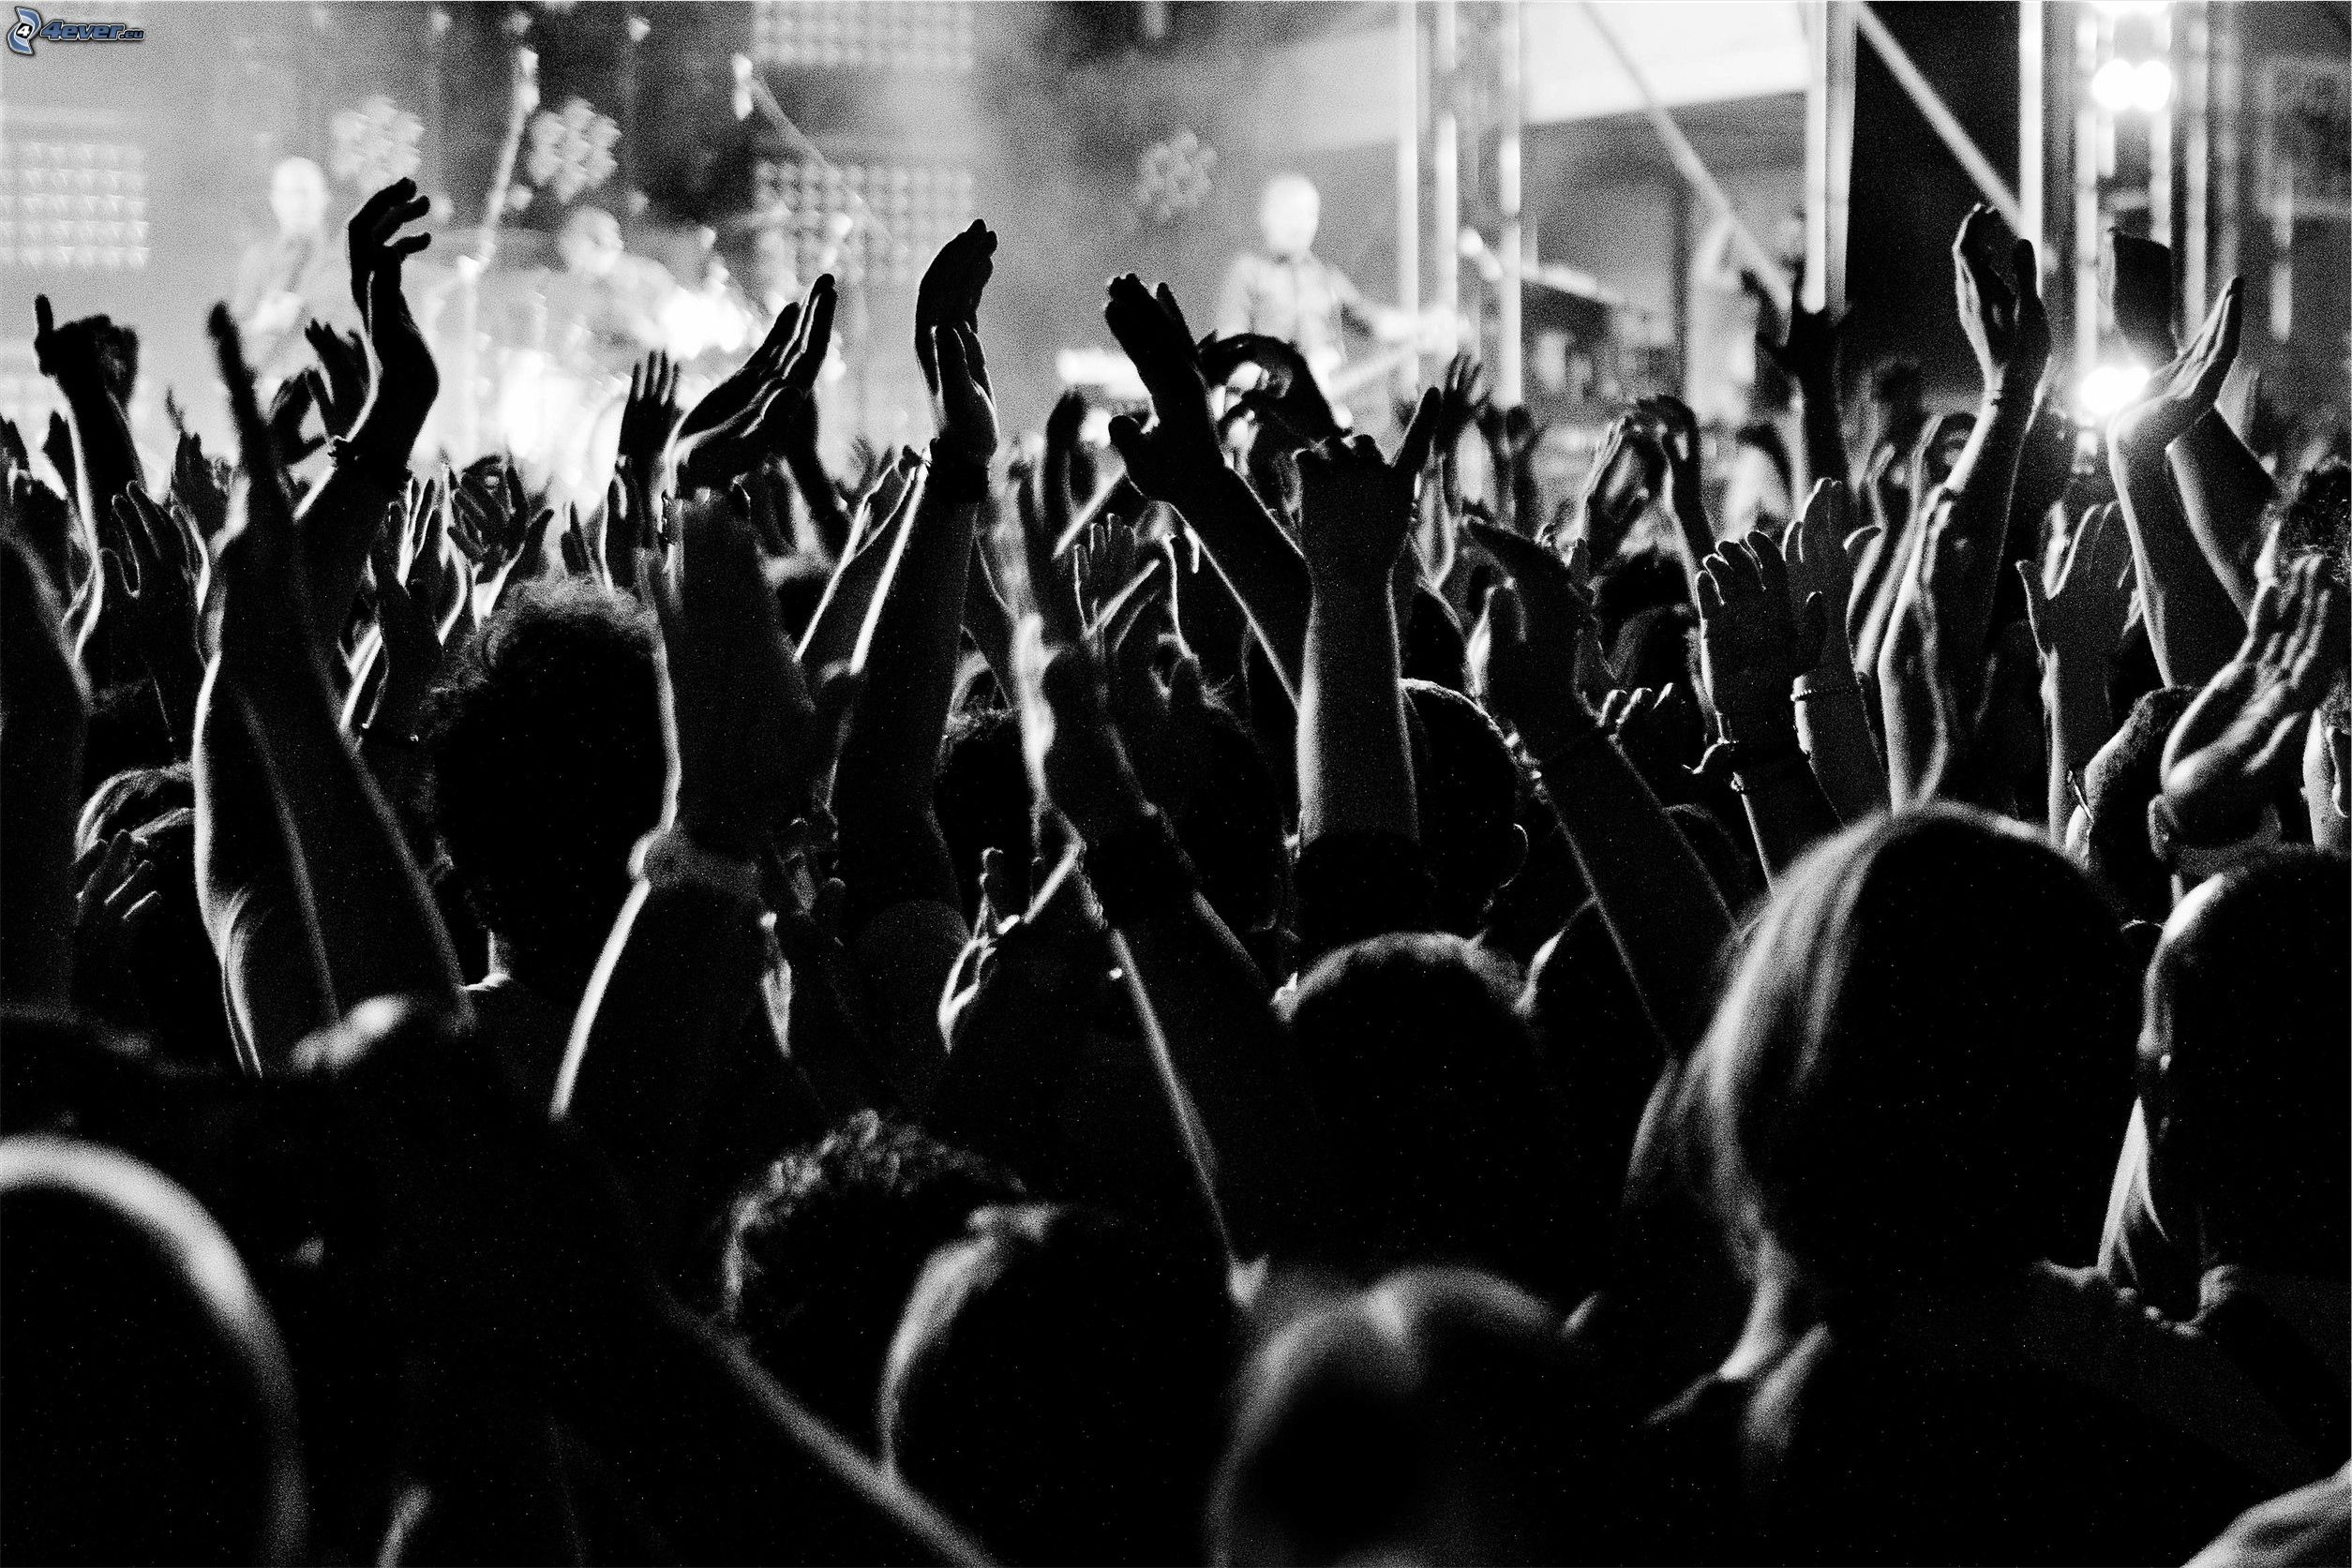 Crowd with Hands in Air